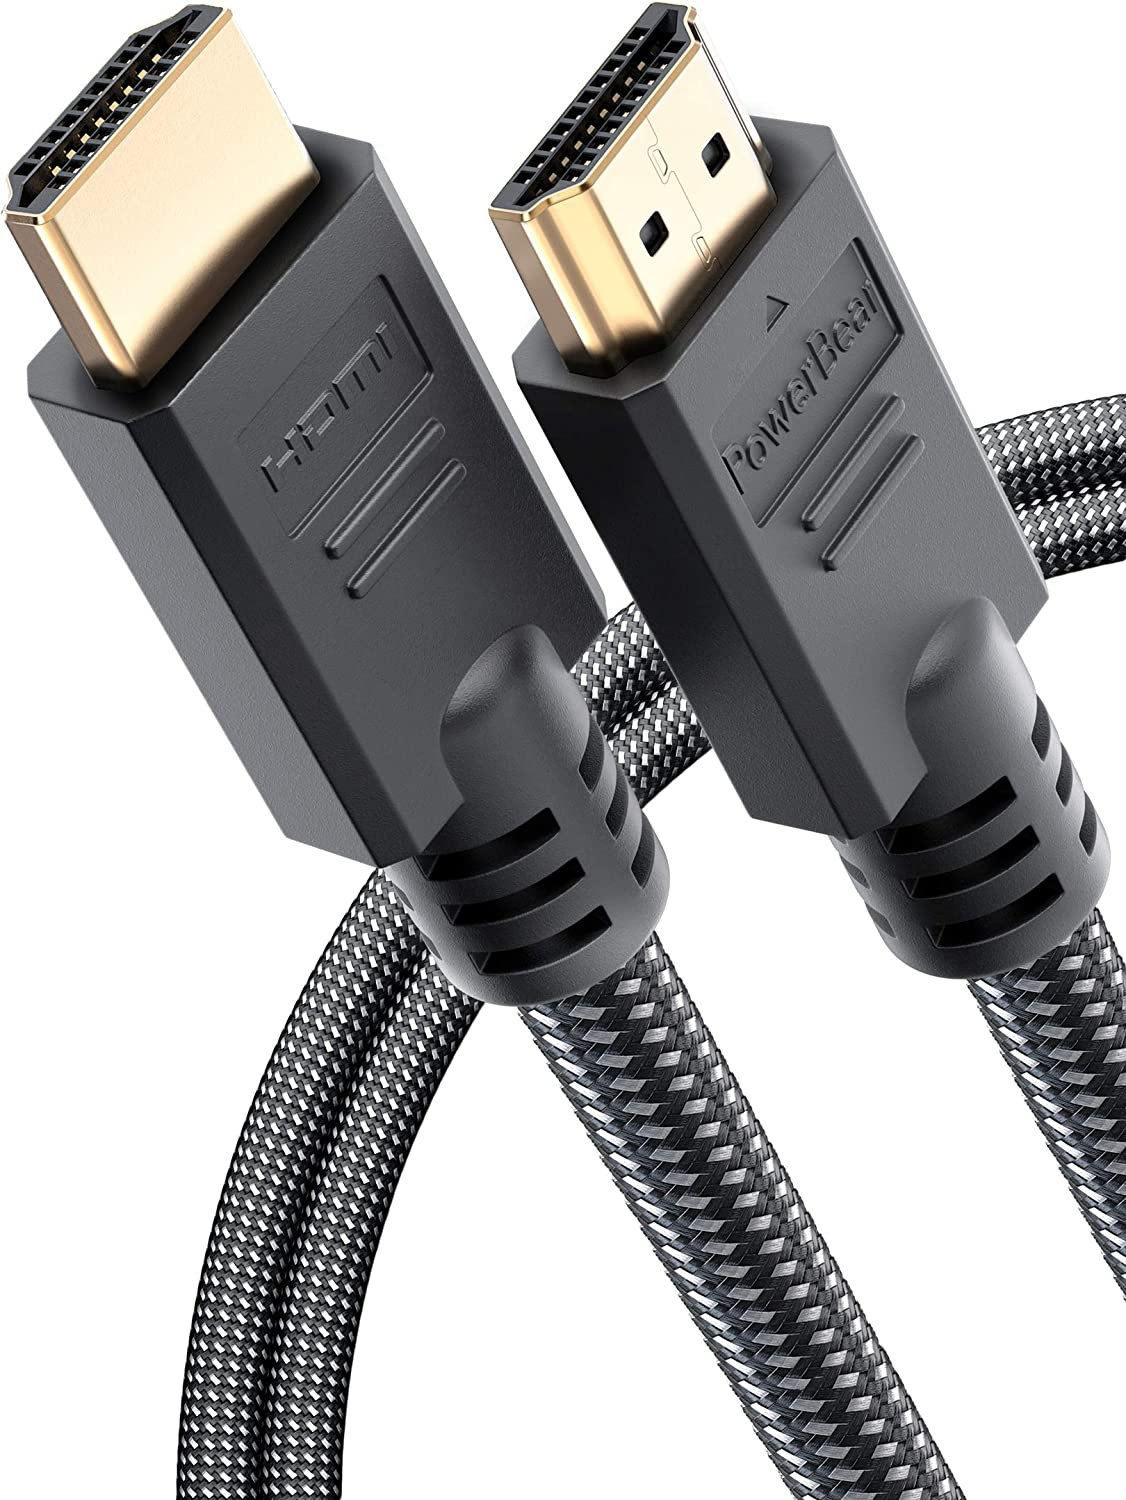 PowerBear 4K HDMI Cable 6 ft | High Speed, Braided Nylon & Gold Connectors, 4K @ 60Hz, Ultra HD, 2K, 1080P, Dolby & ARC Compatible | for Laptop, Monitor, PS5, PS4, Xbox One, Fire TV, Apple TV & More